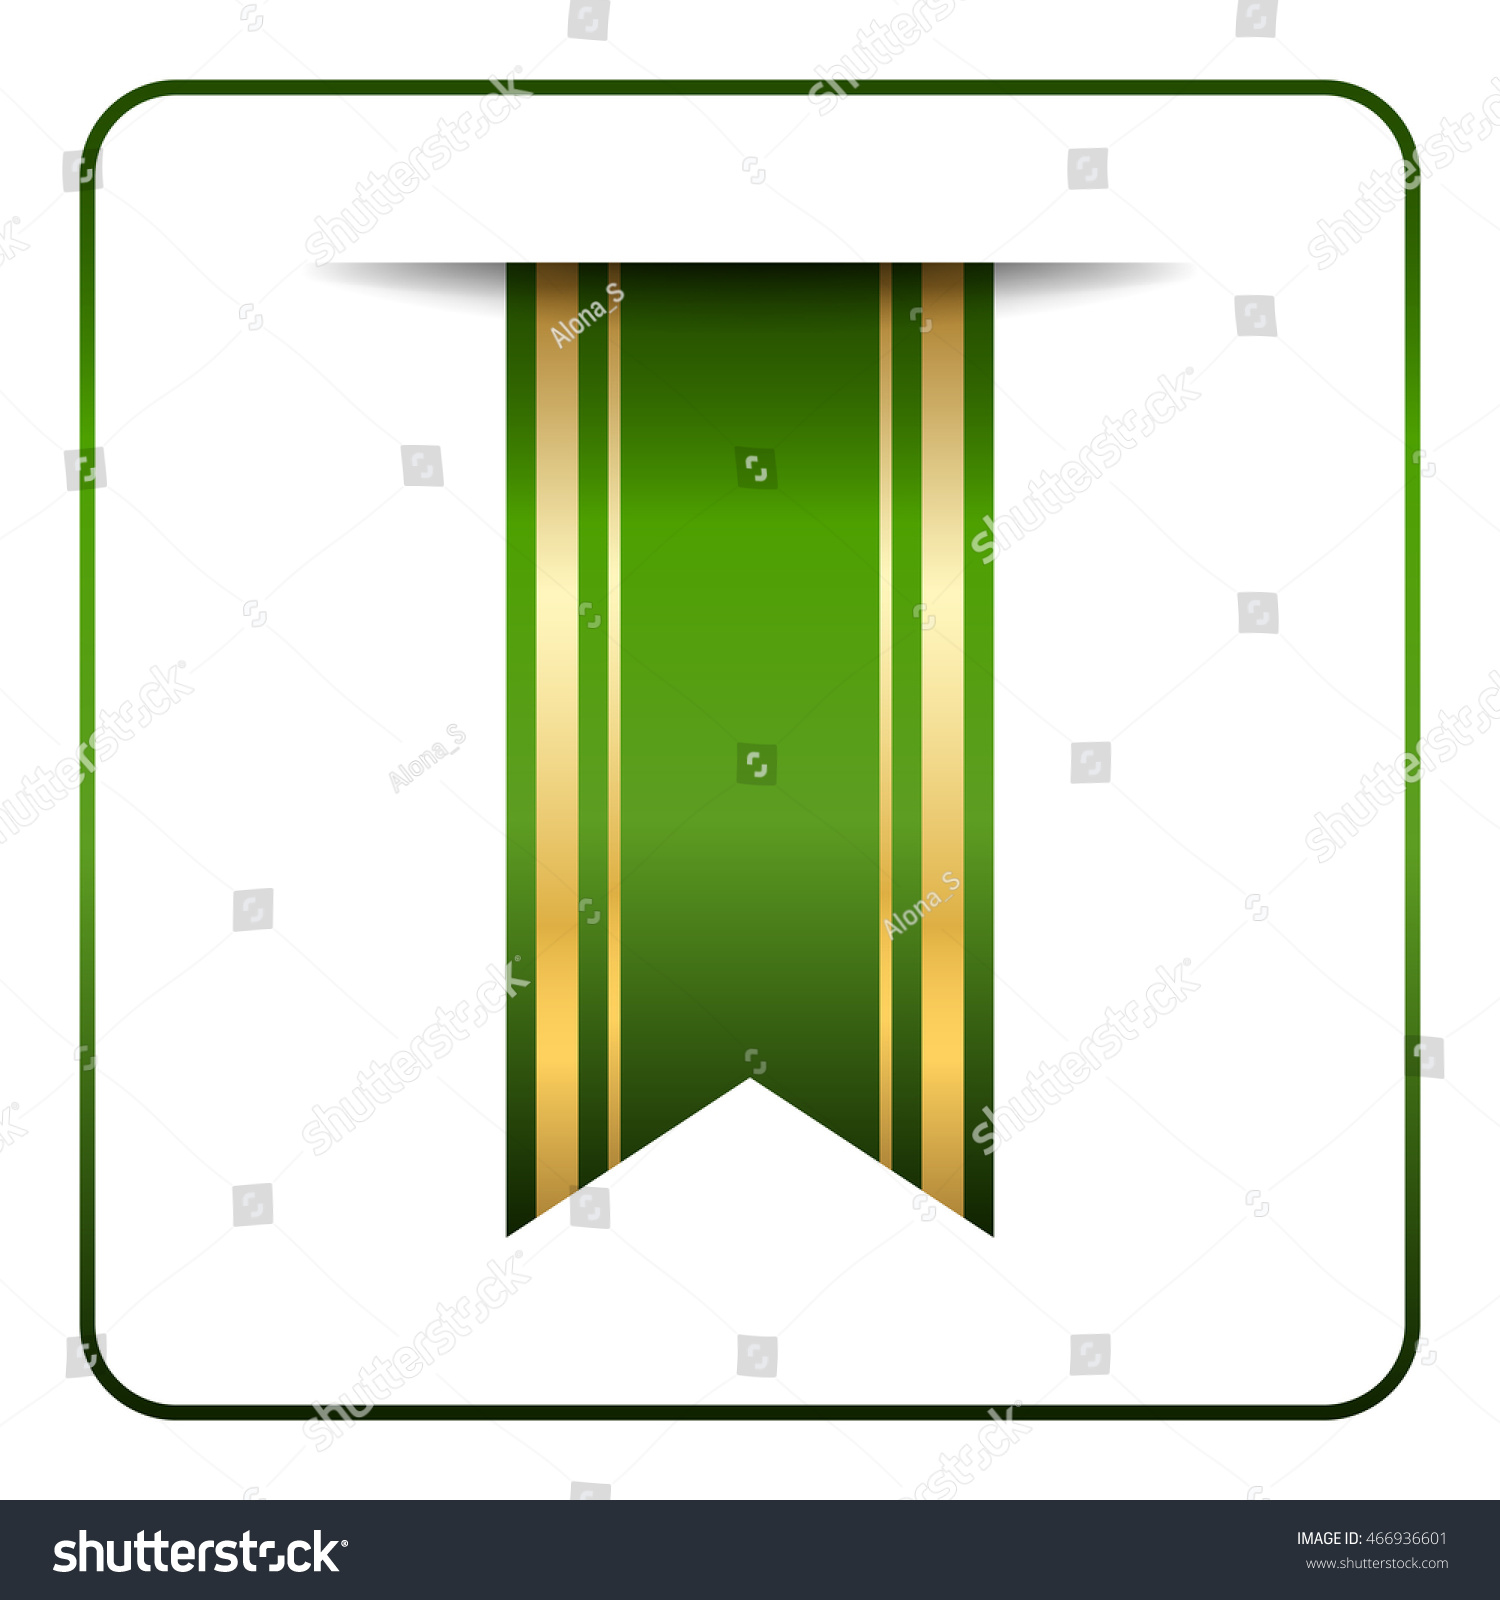 green gold bookmark banner vertical book stock vector (royalty free